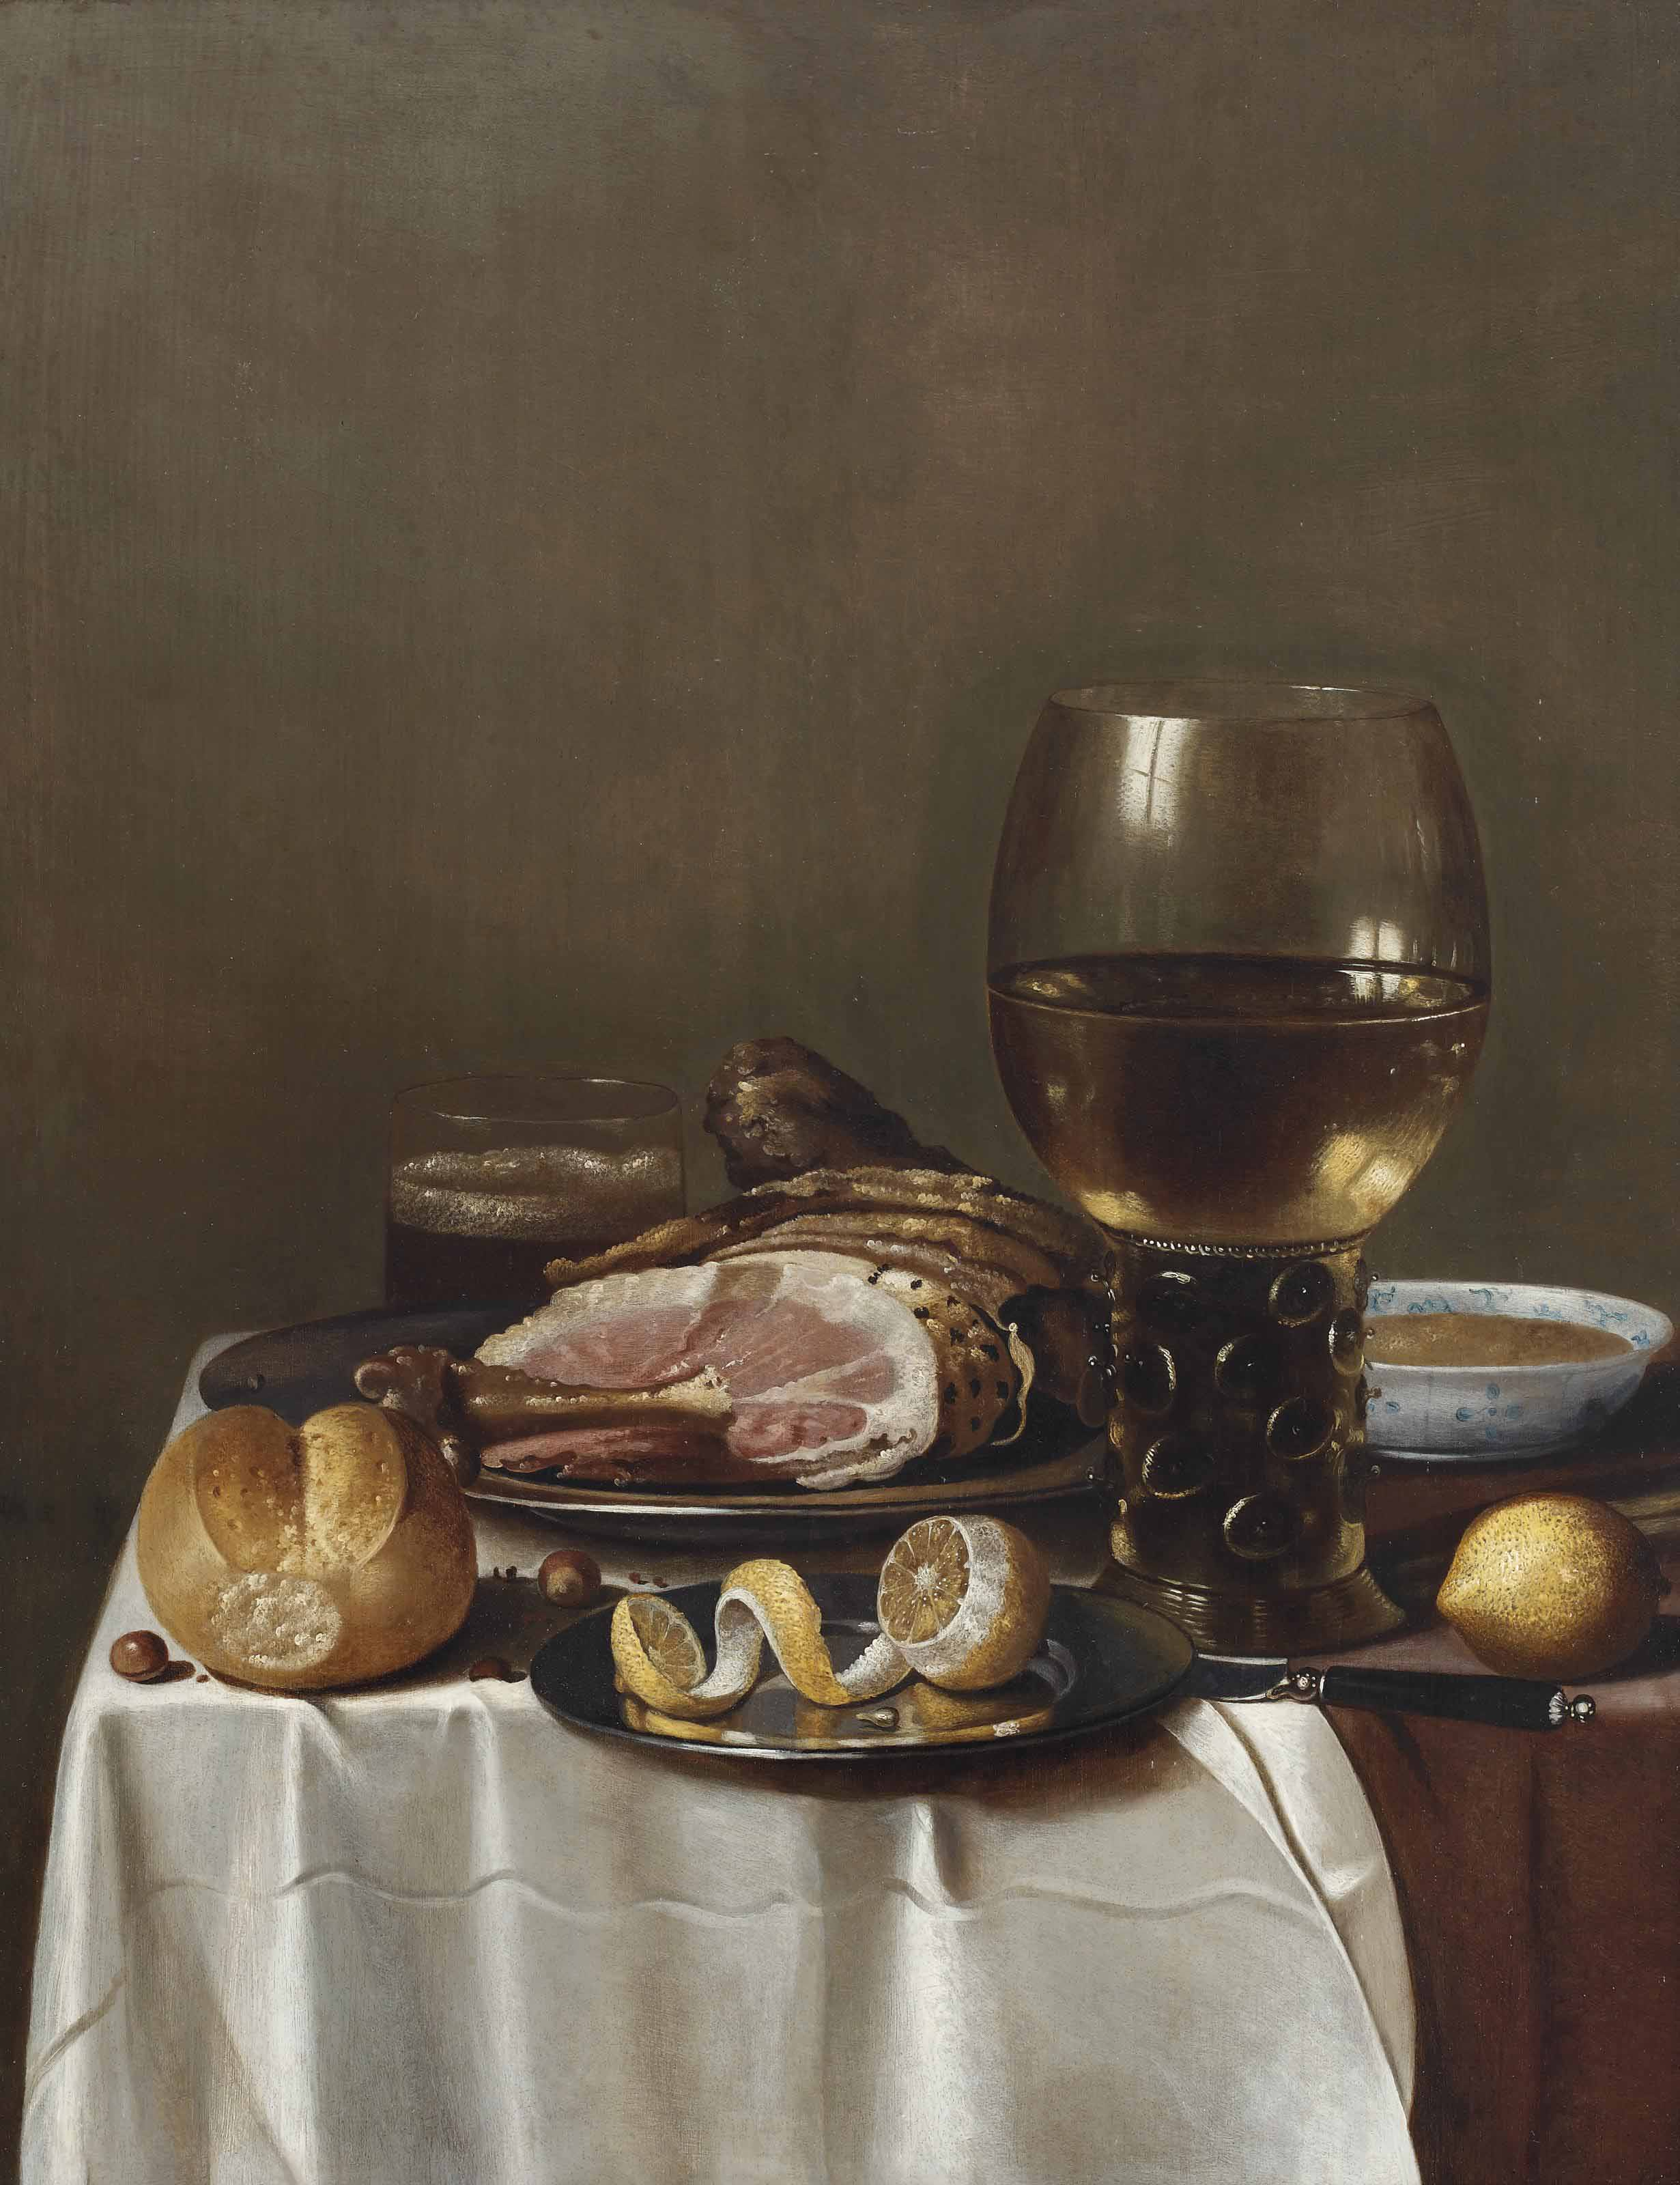 A roemer of white wine, a porcelain bowl, a ham, a glass of beer, a bread roll. a peeled lemon on a plate with a knife, on a partially draped table